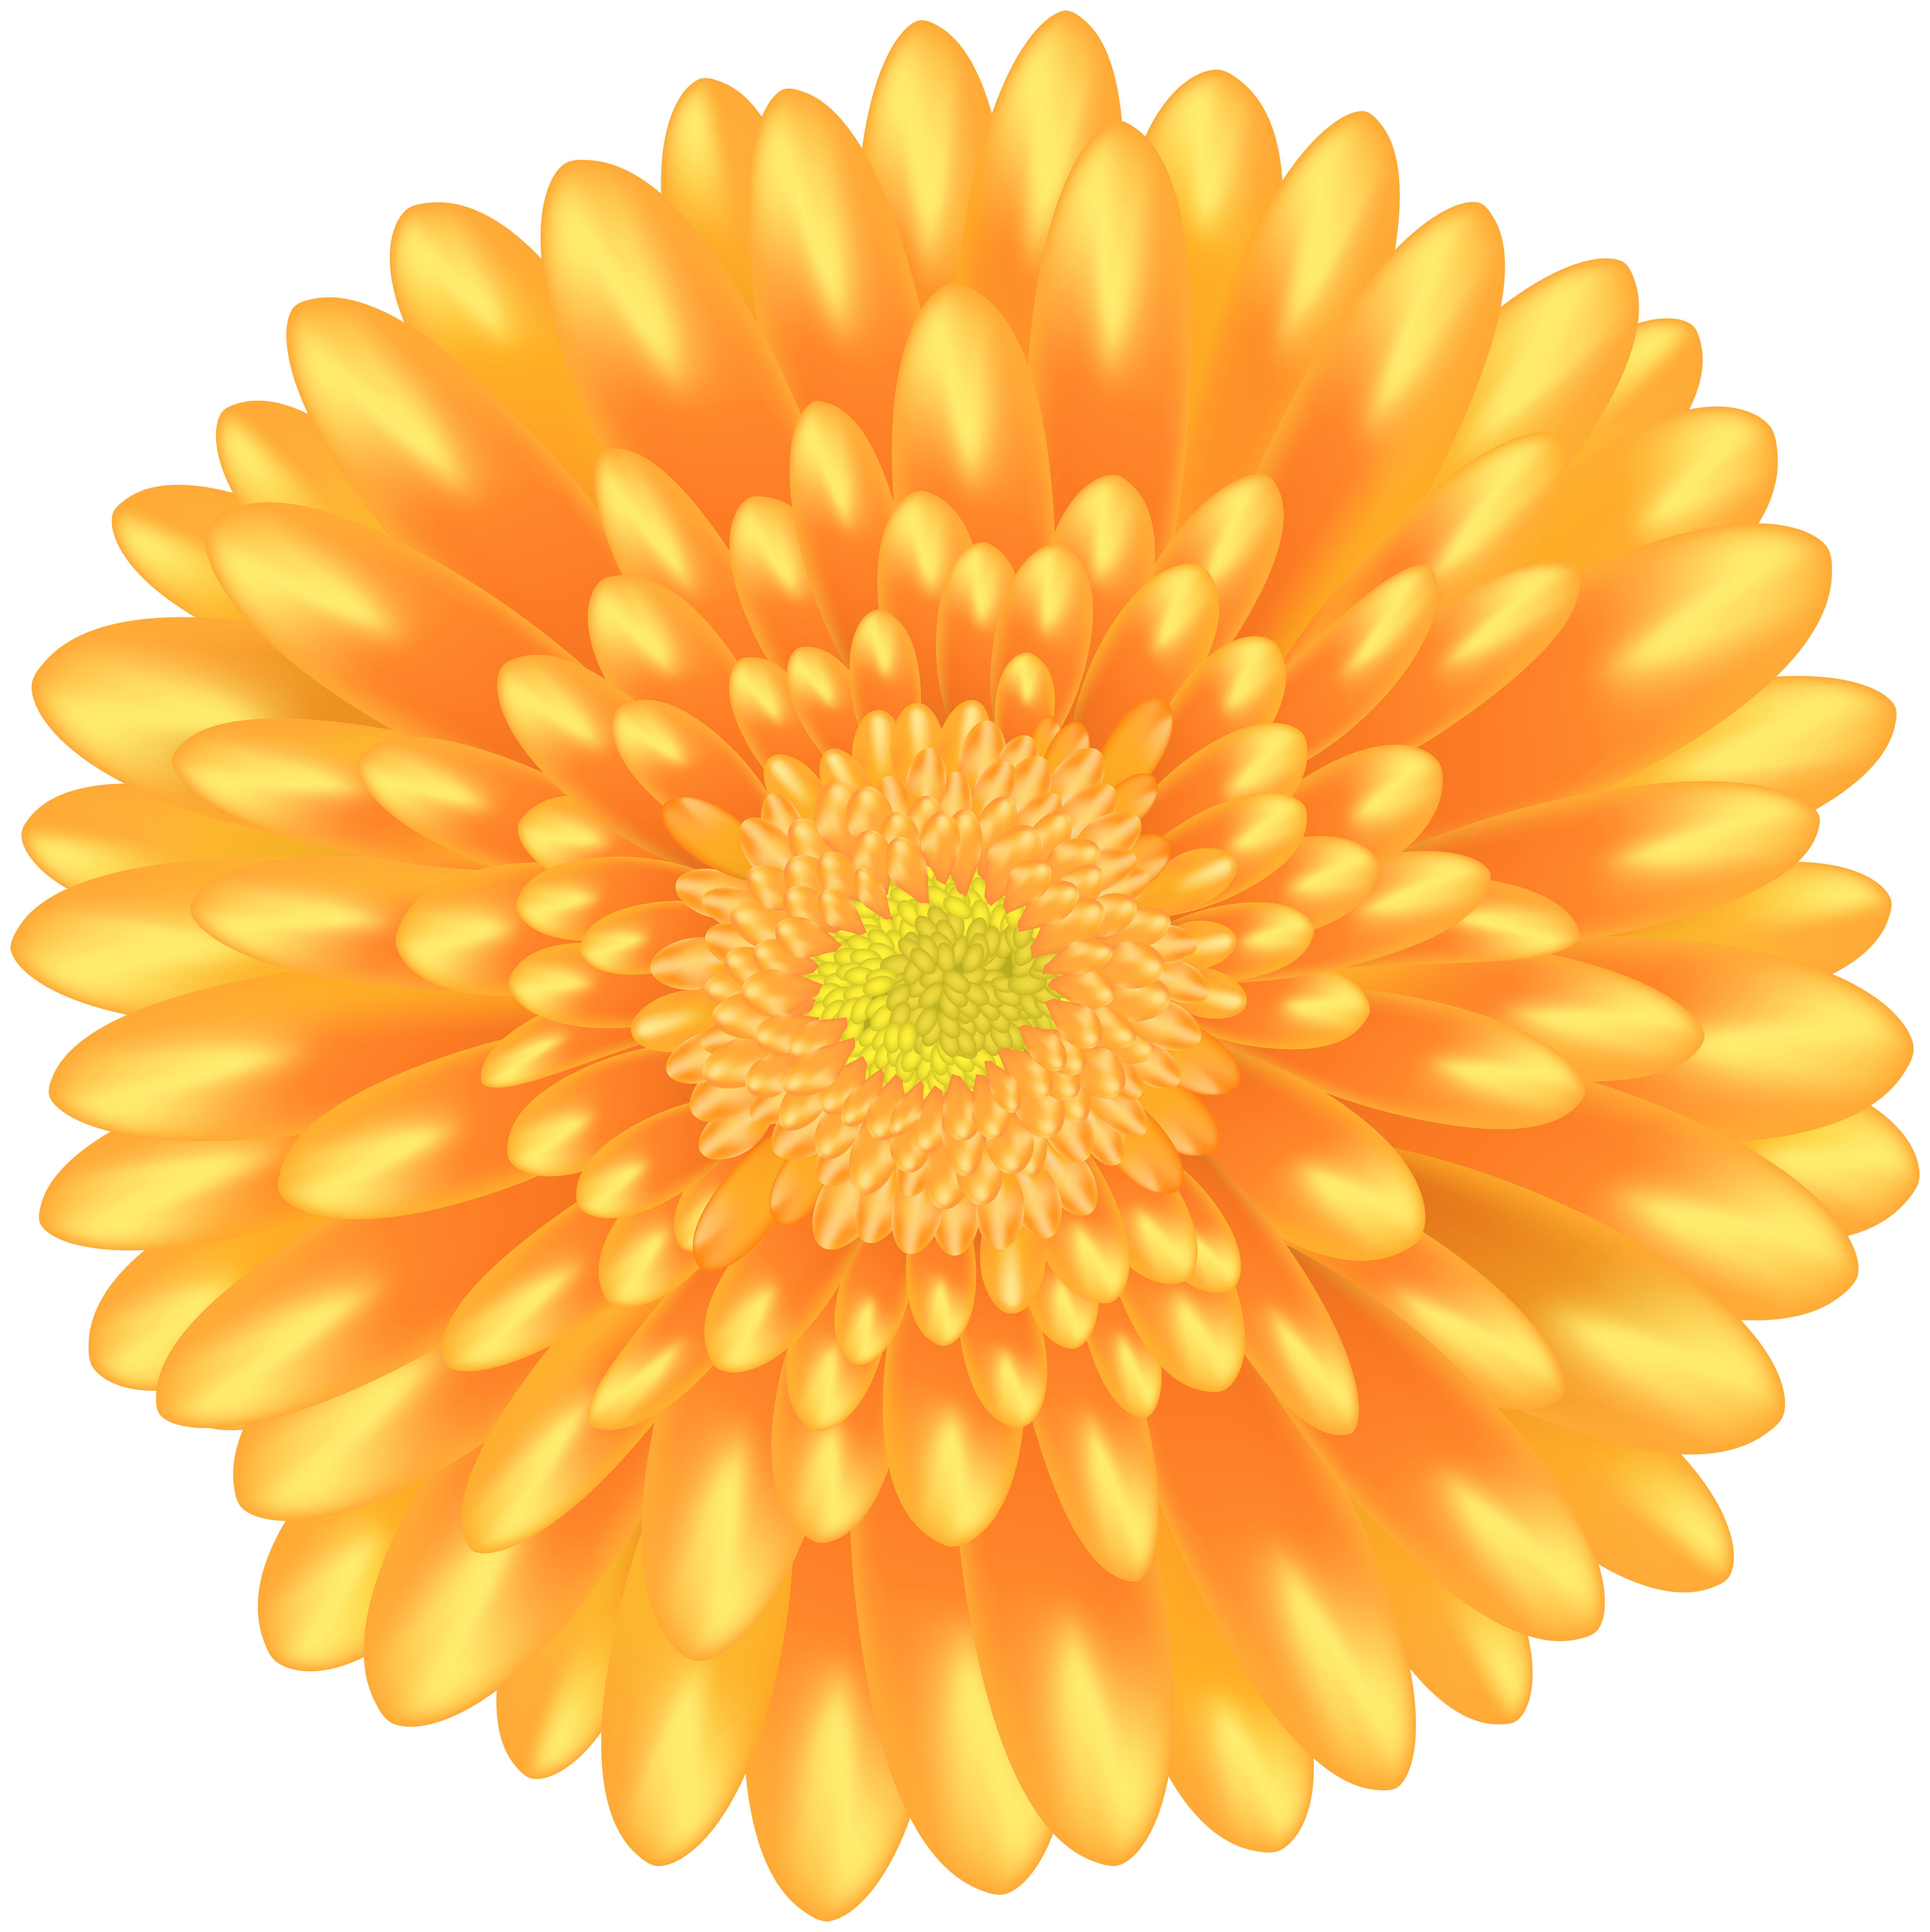 Marigold flower clipart image royalty free Orange Flower PNG Clip Art | Gallery Yopriceville - High-Quality ... image royalty free